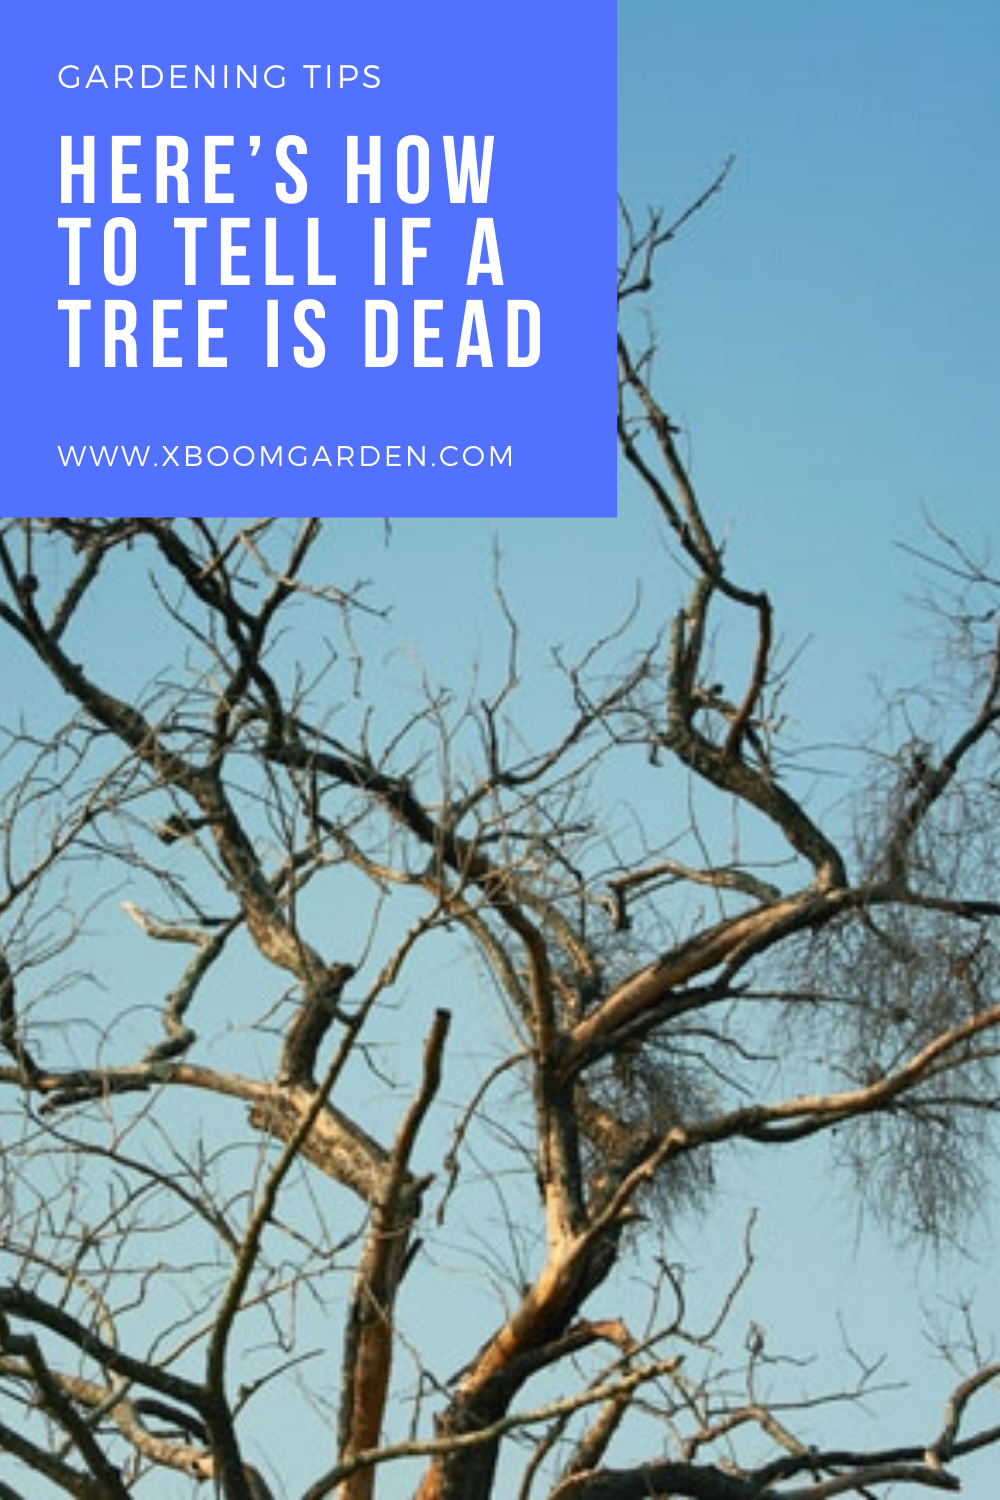 Here S How To Tell If A Tree Is Dead Gardening Tips To Tell Yard Work